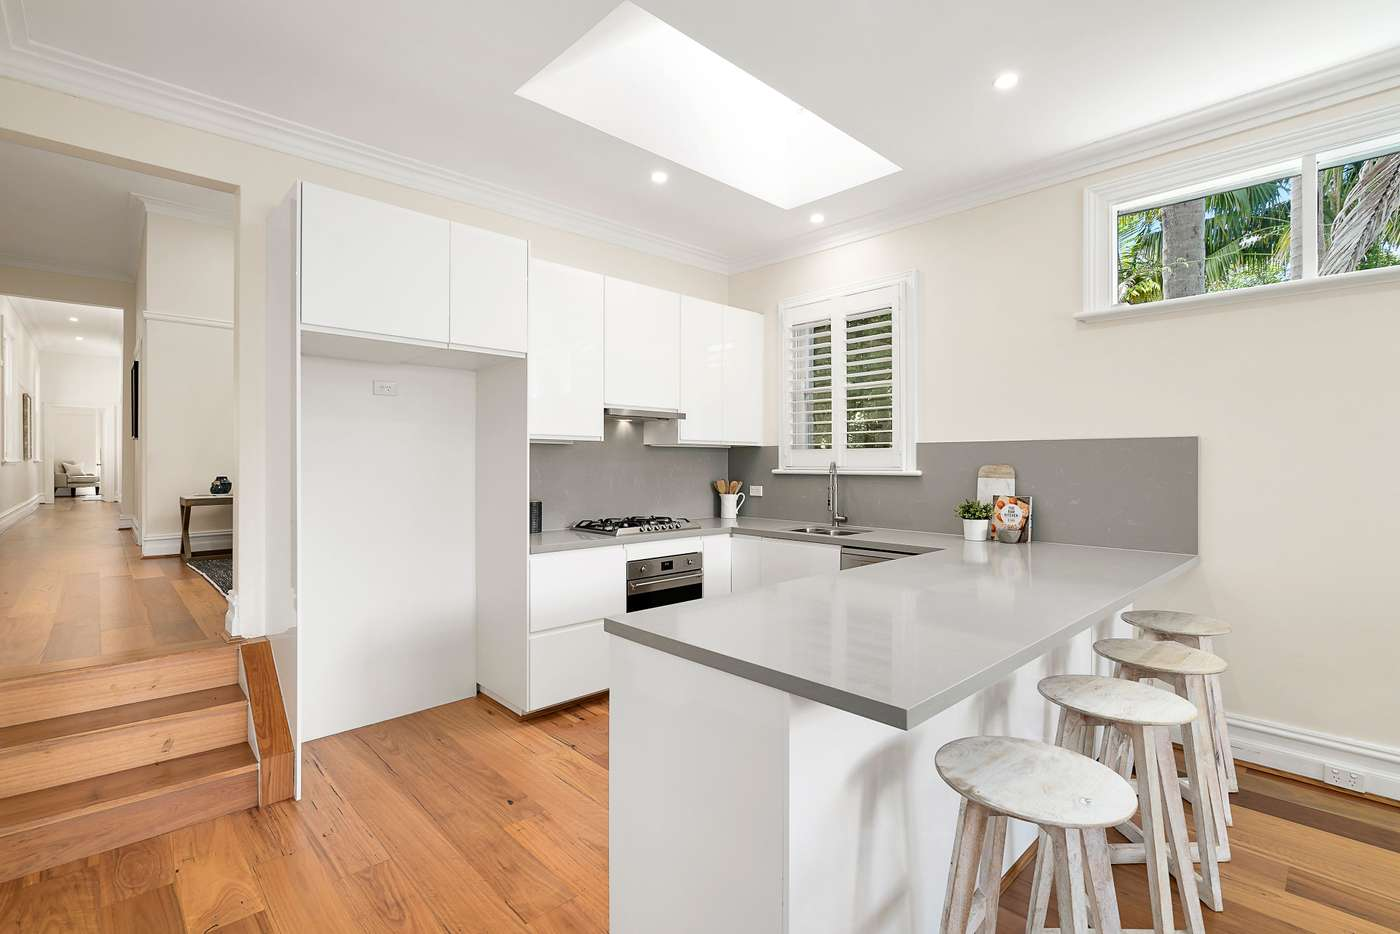 Fifth view of Homely house listing, 46 Prince Street, Mosman NSW 2088